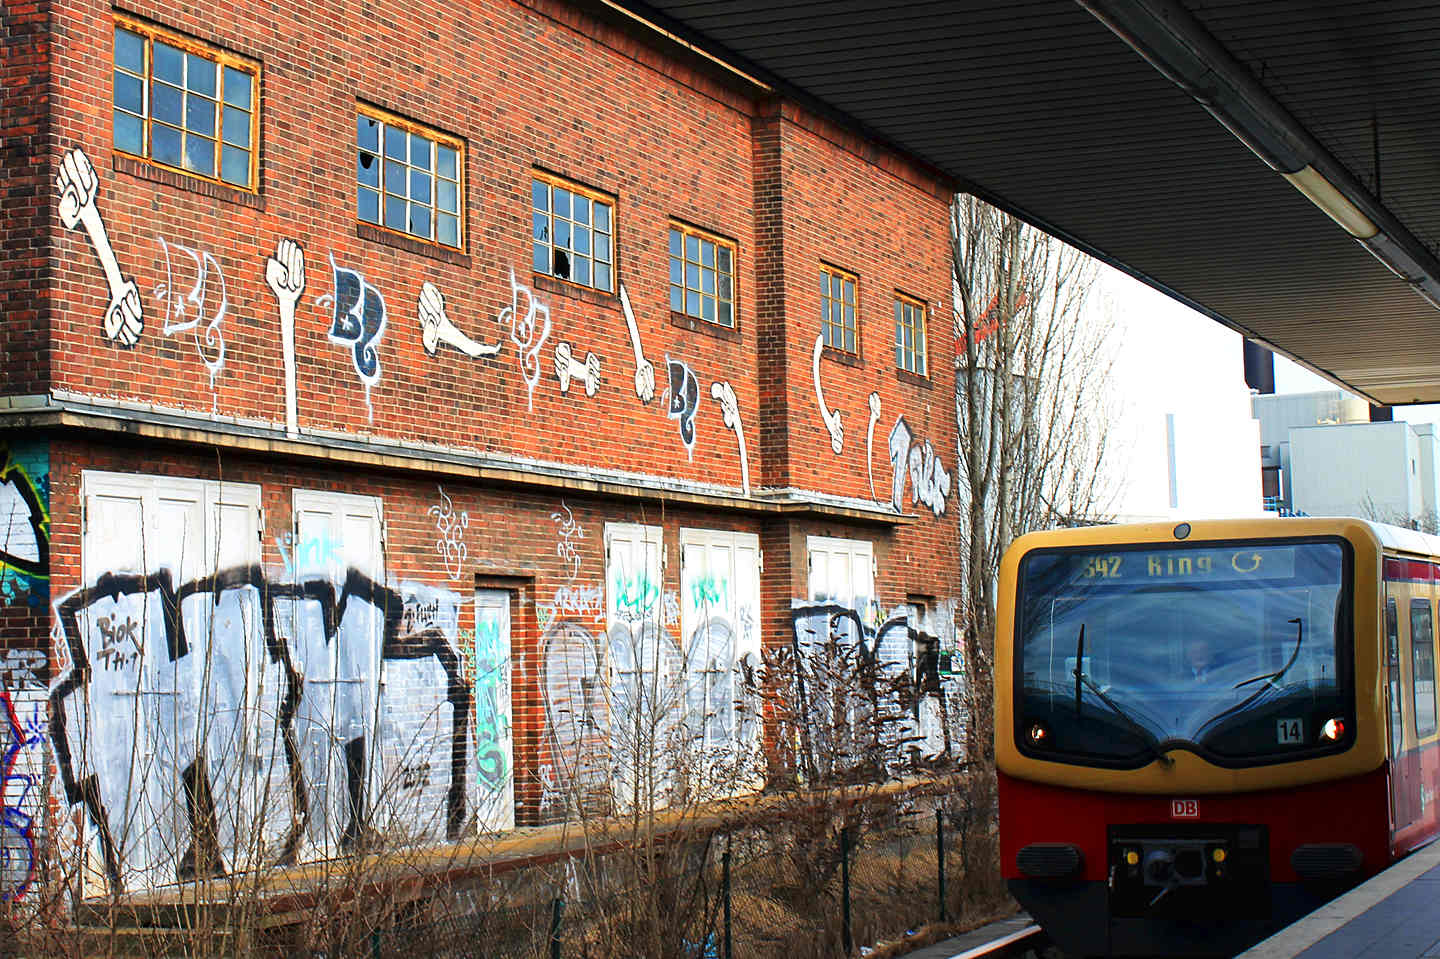 Yellow Fists (Gelbe Fauste) by Kripoe CBS Crew (Cowboys) at Westhafen Station in Berlin. Graffiti photo by Street Art Berlin